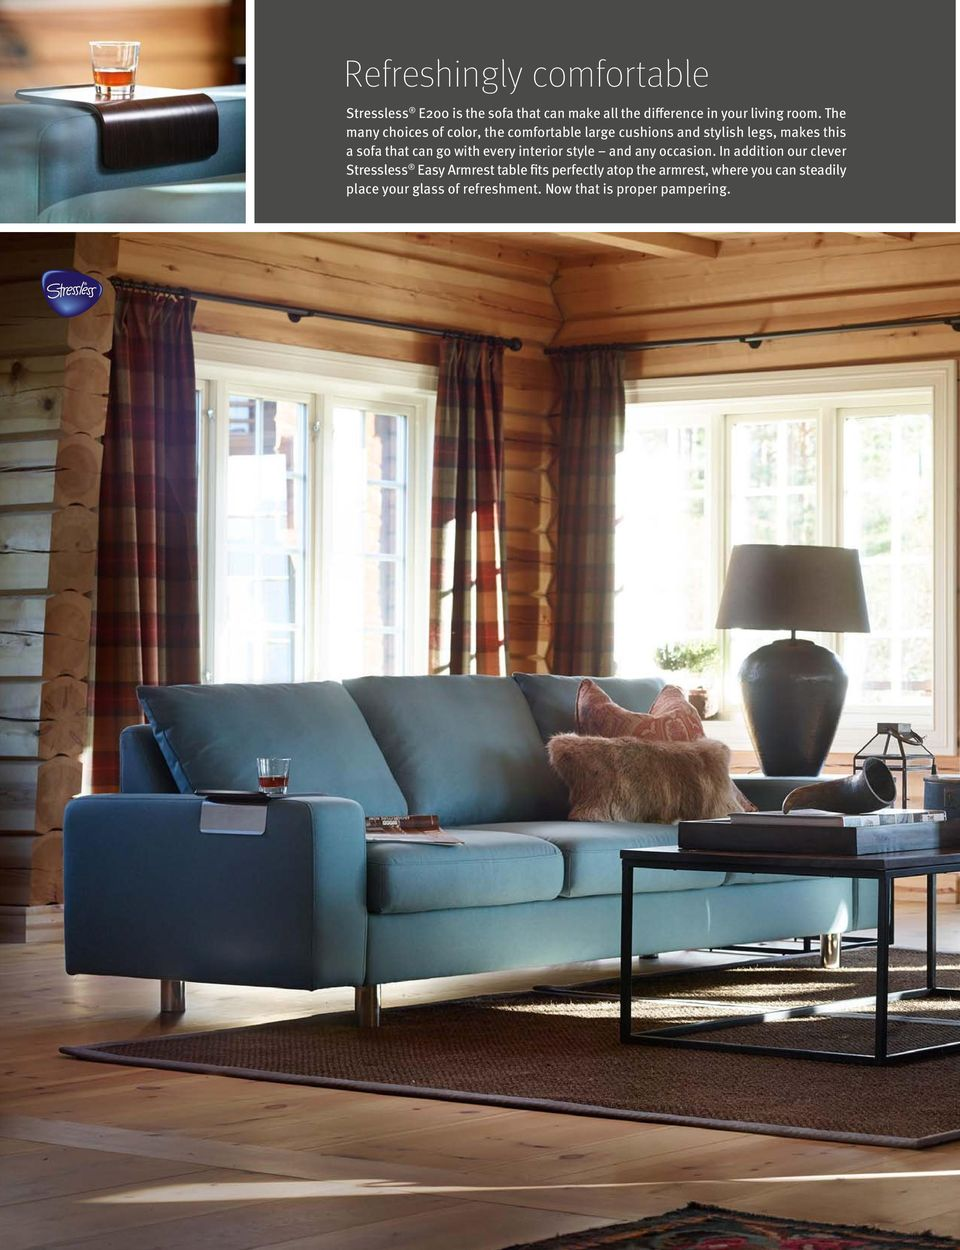 Stressless Sofa E200 The Stressless Book Of Comfort Collection Pdf